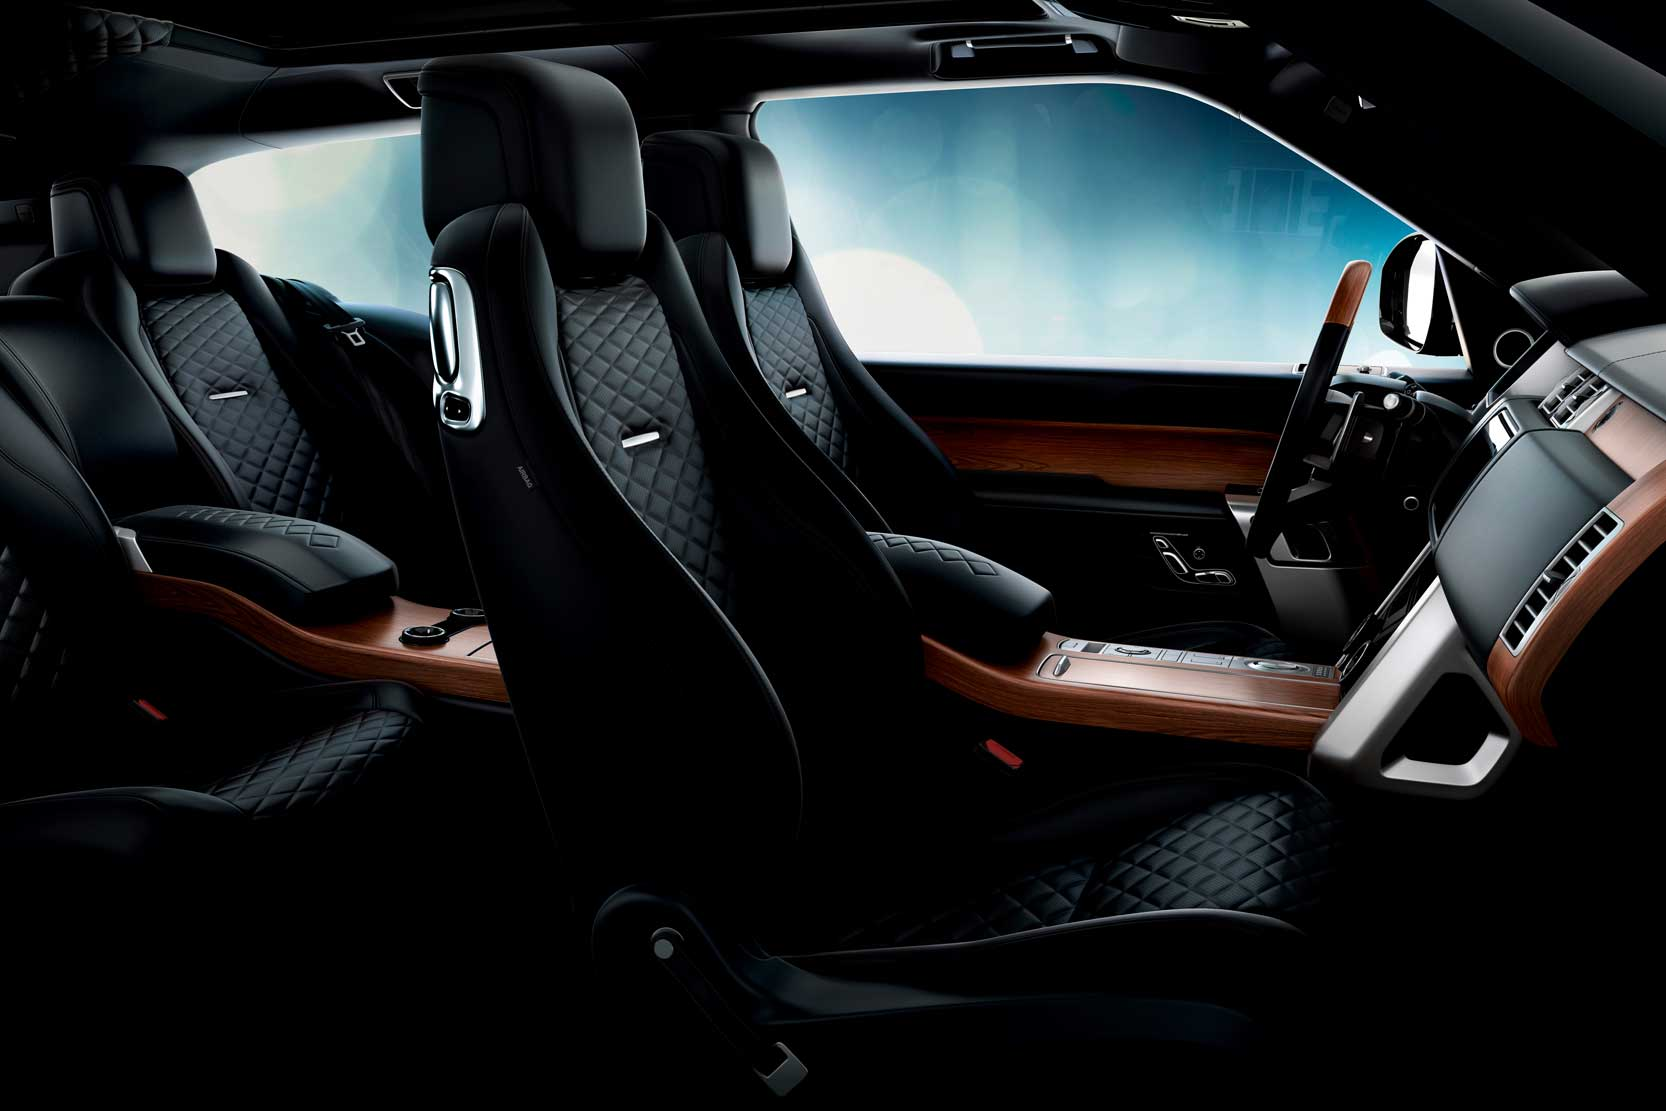 Interieur_Land-Rover-Range-Rover-SV-Coupe_15